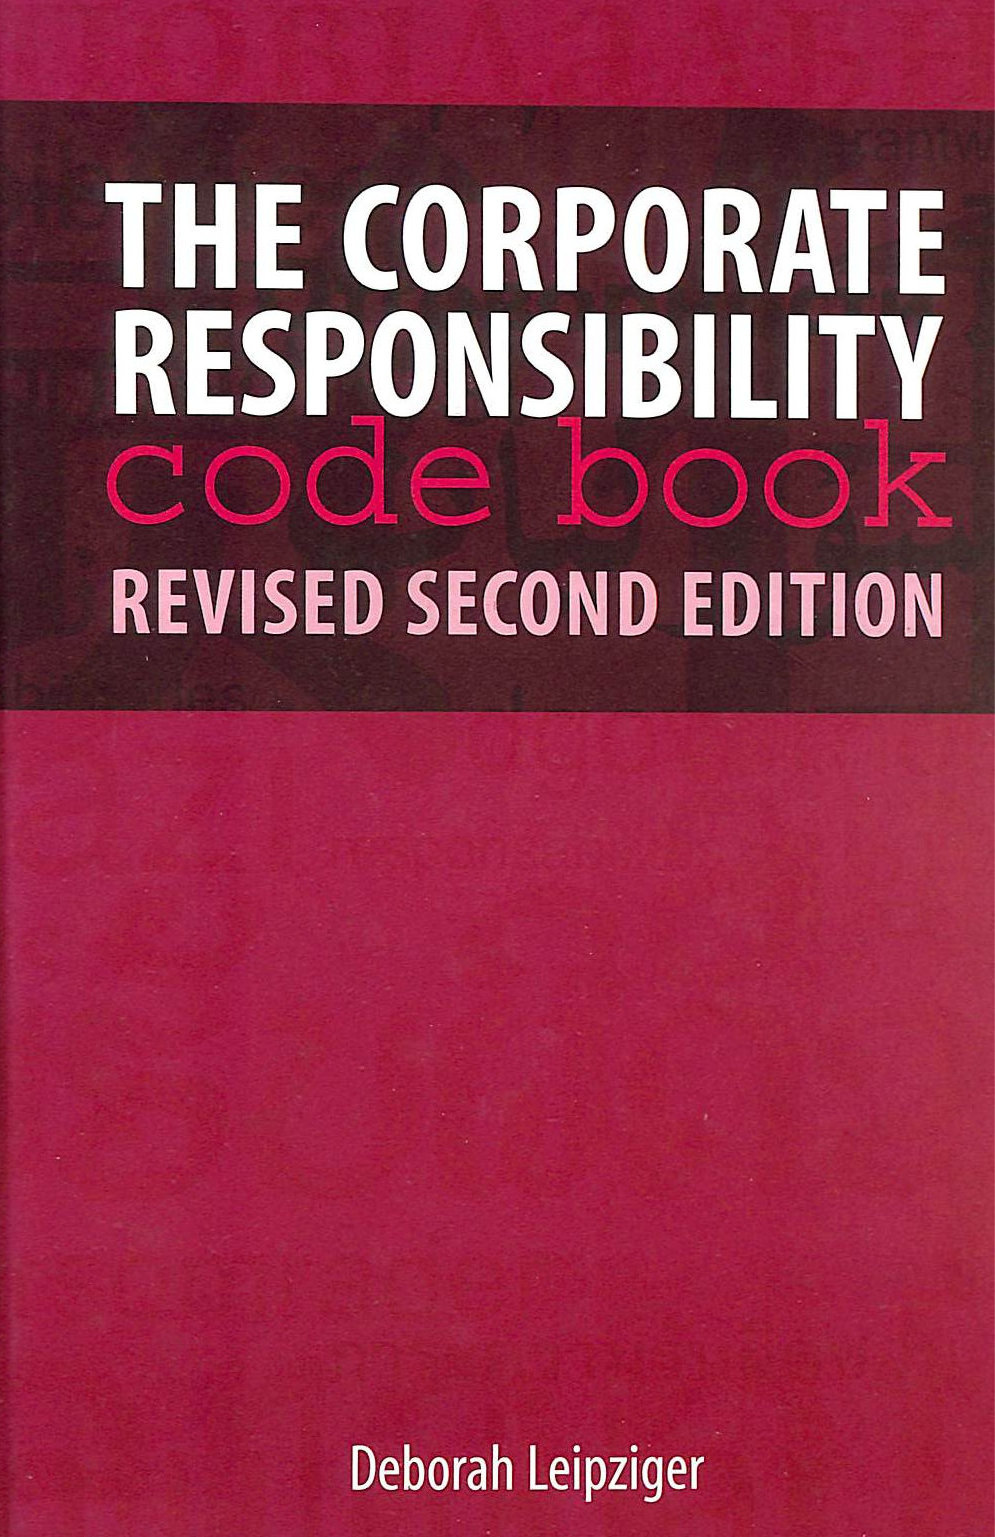 Image for The Corporate Responsibility Code Book